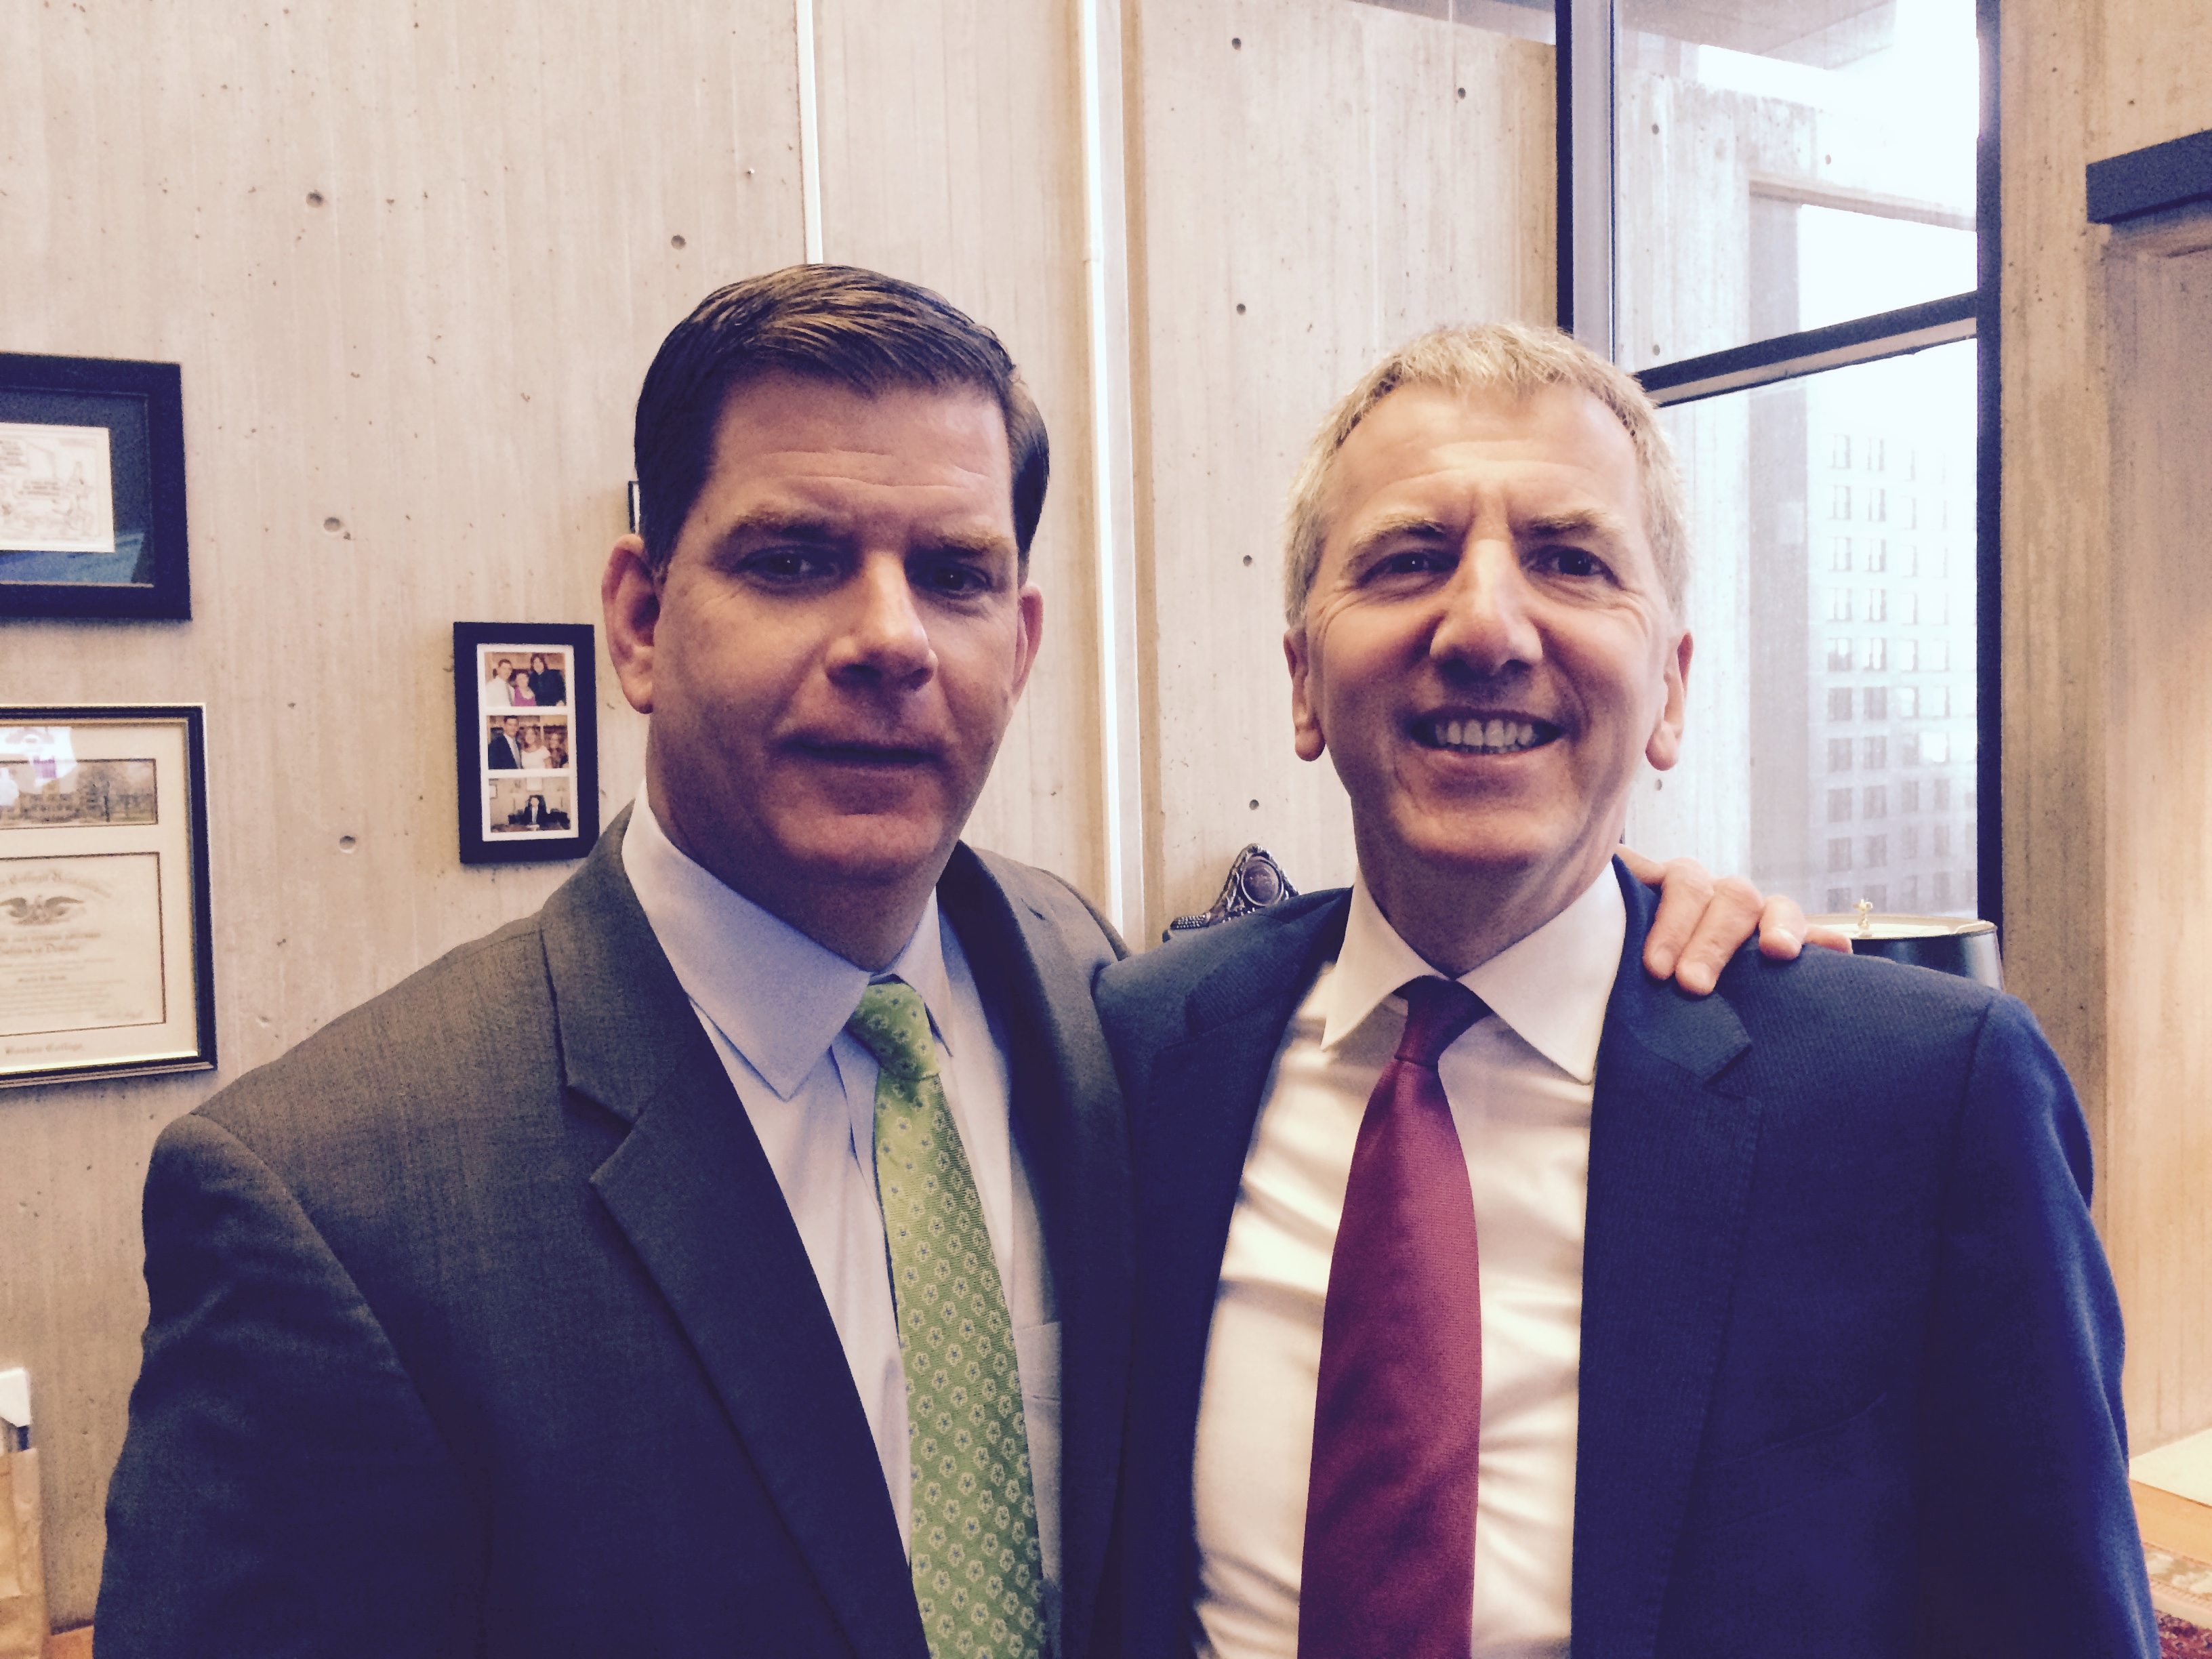 Catching up in his office with Mayor Marty Walsh of Boston on ambitious plans to mark the sister city agreement between our great cities